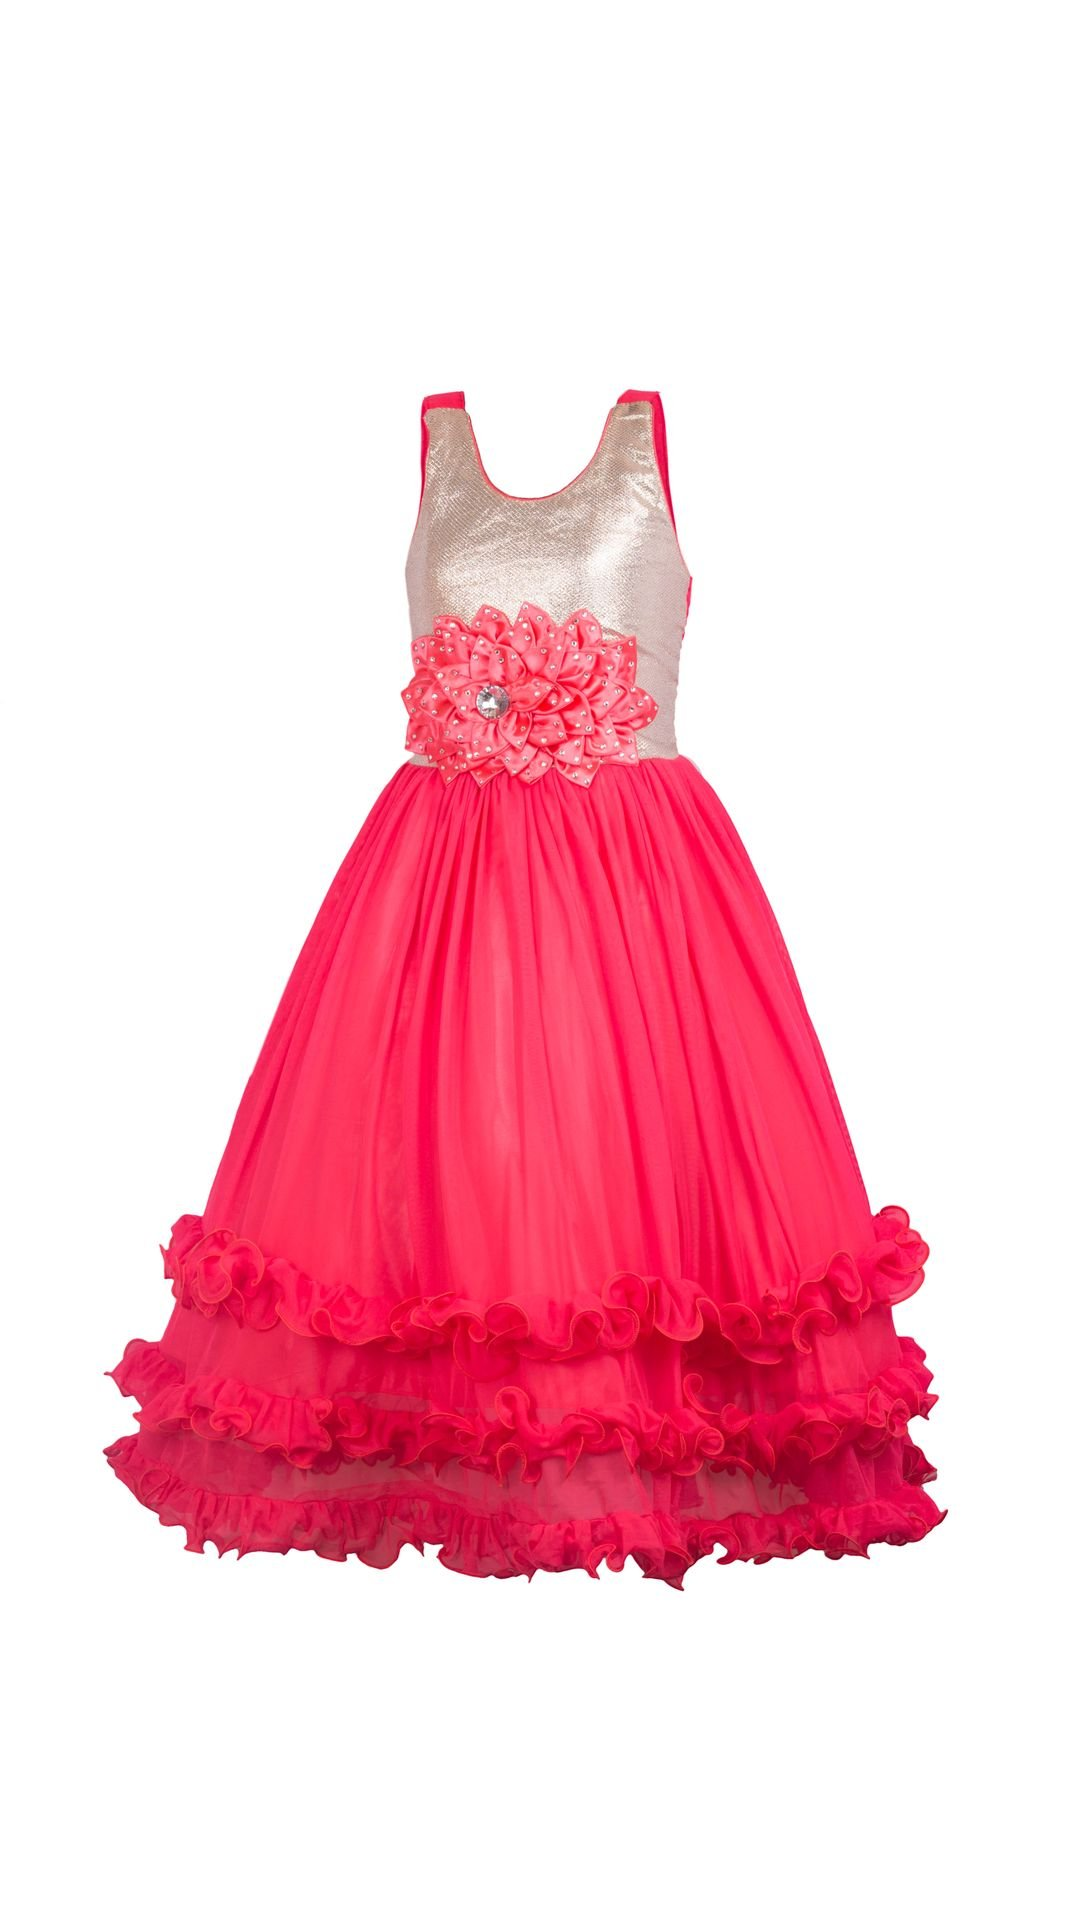 My Lil Princess Baby Girls Birthday Party wear Frock Dress_Ocean Red ...